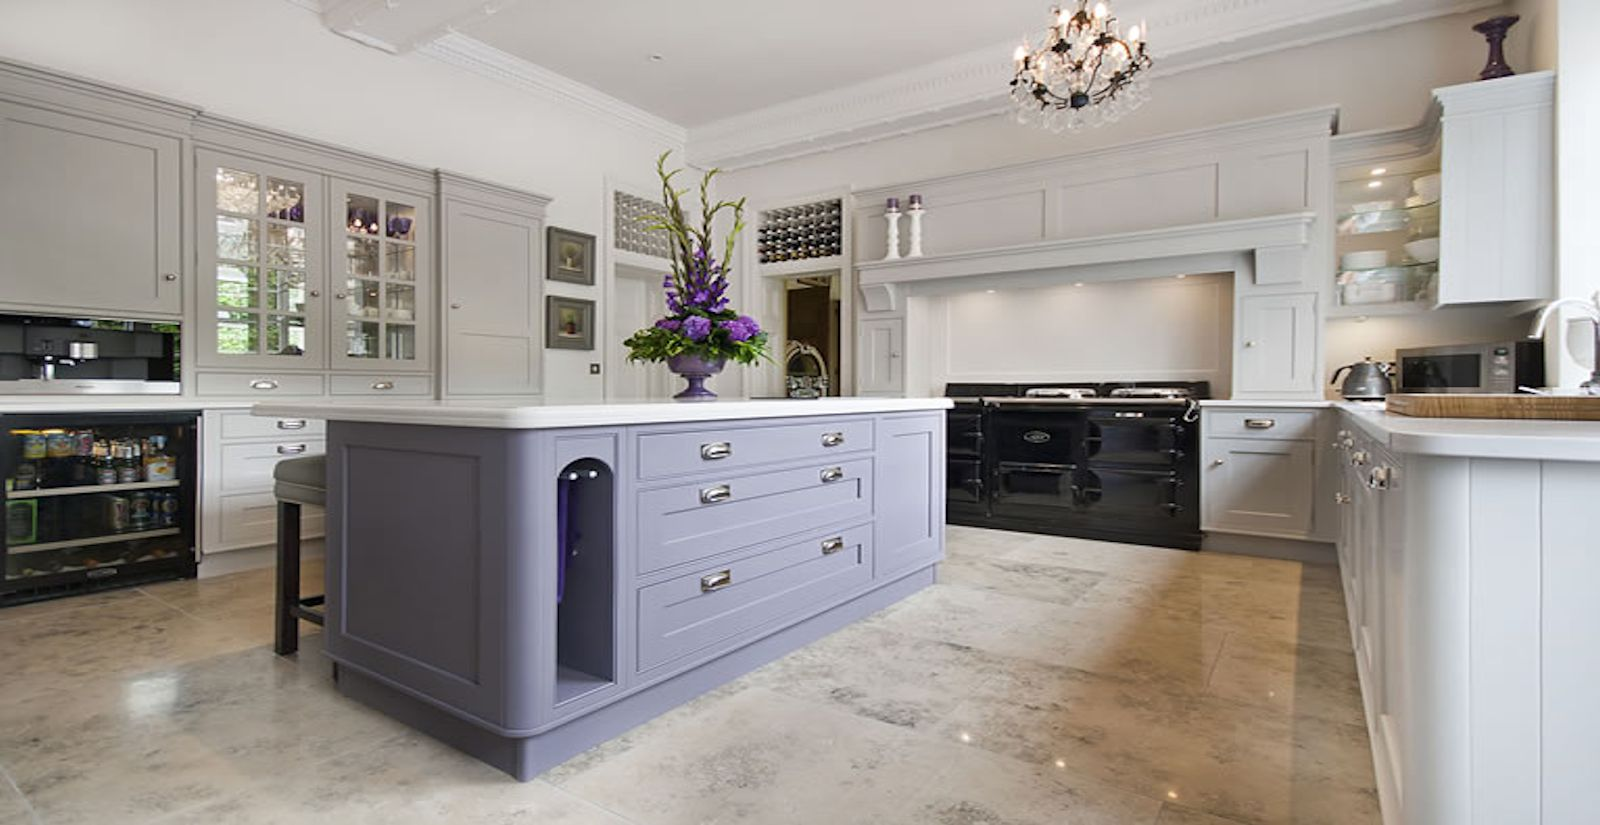 Kitchen Design, Cabinet Supplier, Commercial Cabinetry ...